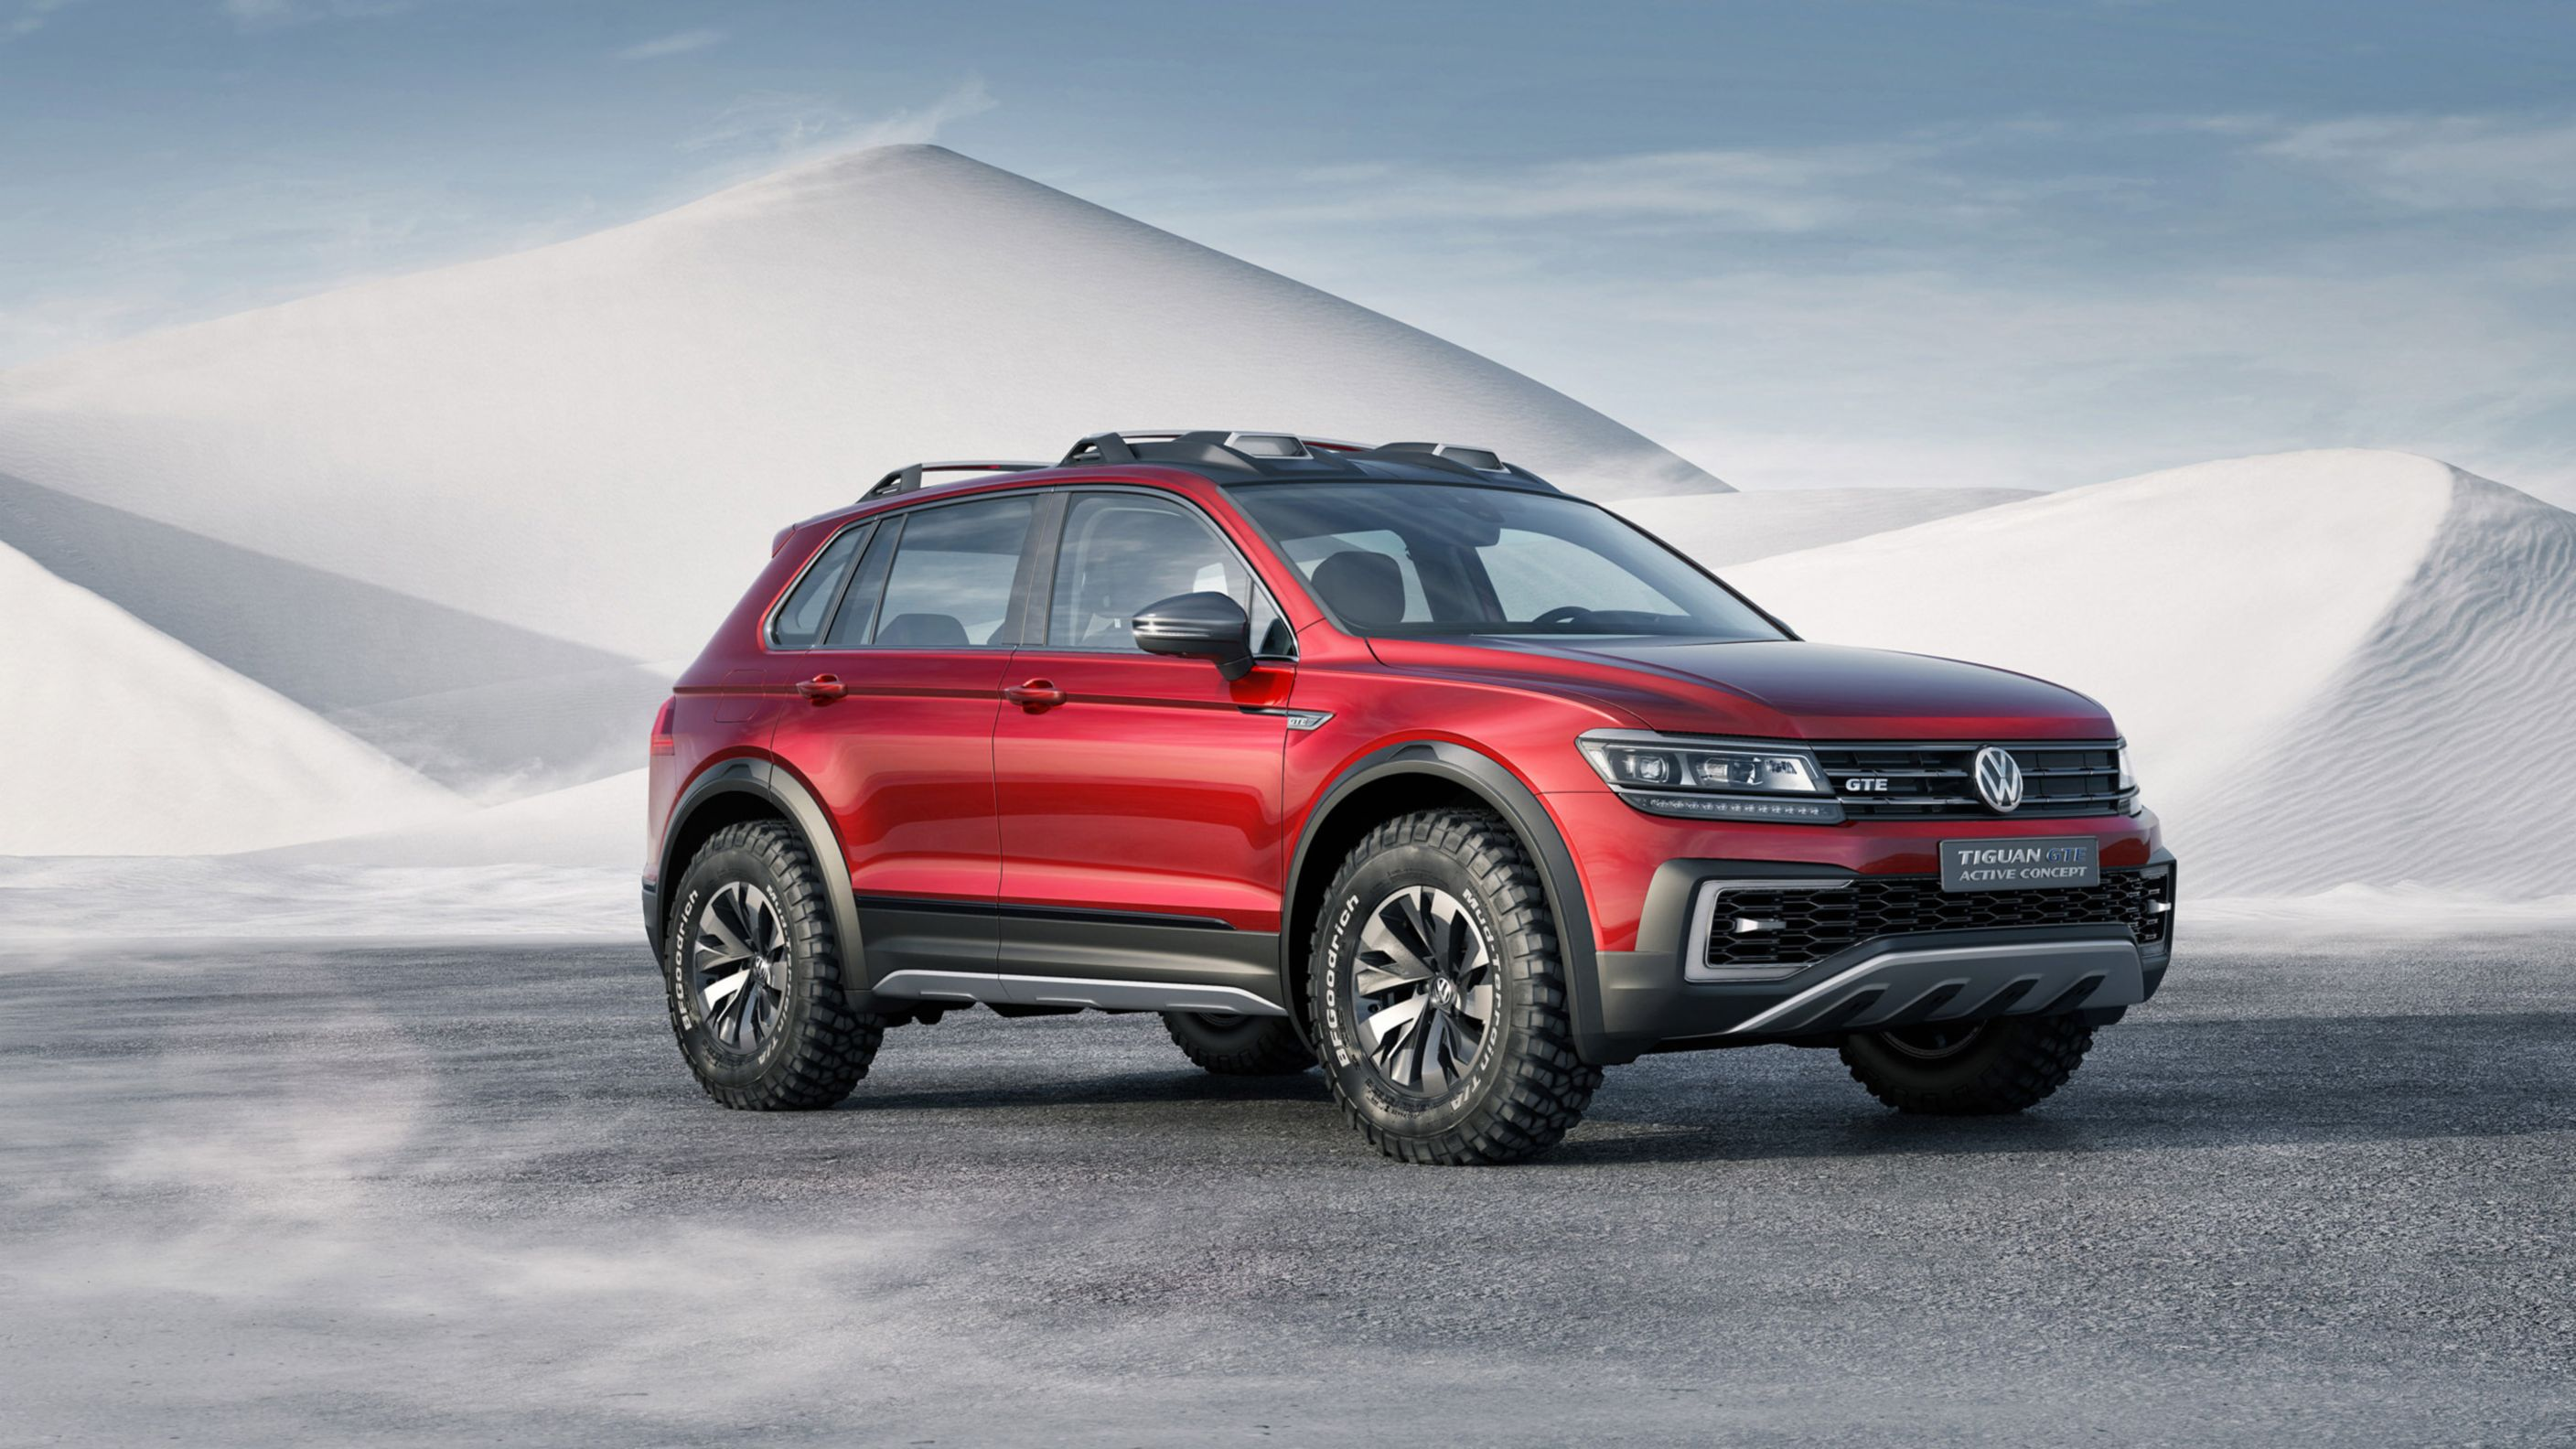 Download free HD 2017 Volkswagen Tiguan Gte Active Concept HD Wallpaper, image